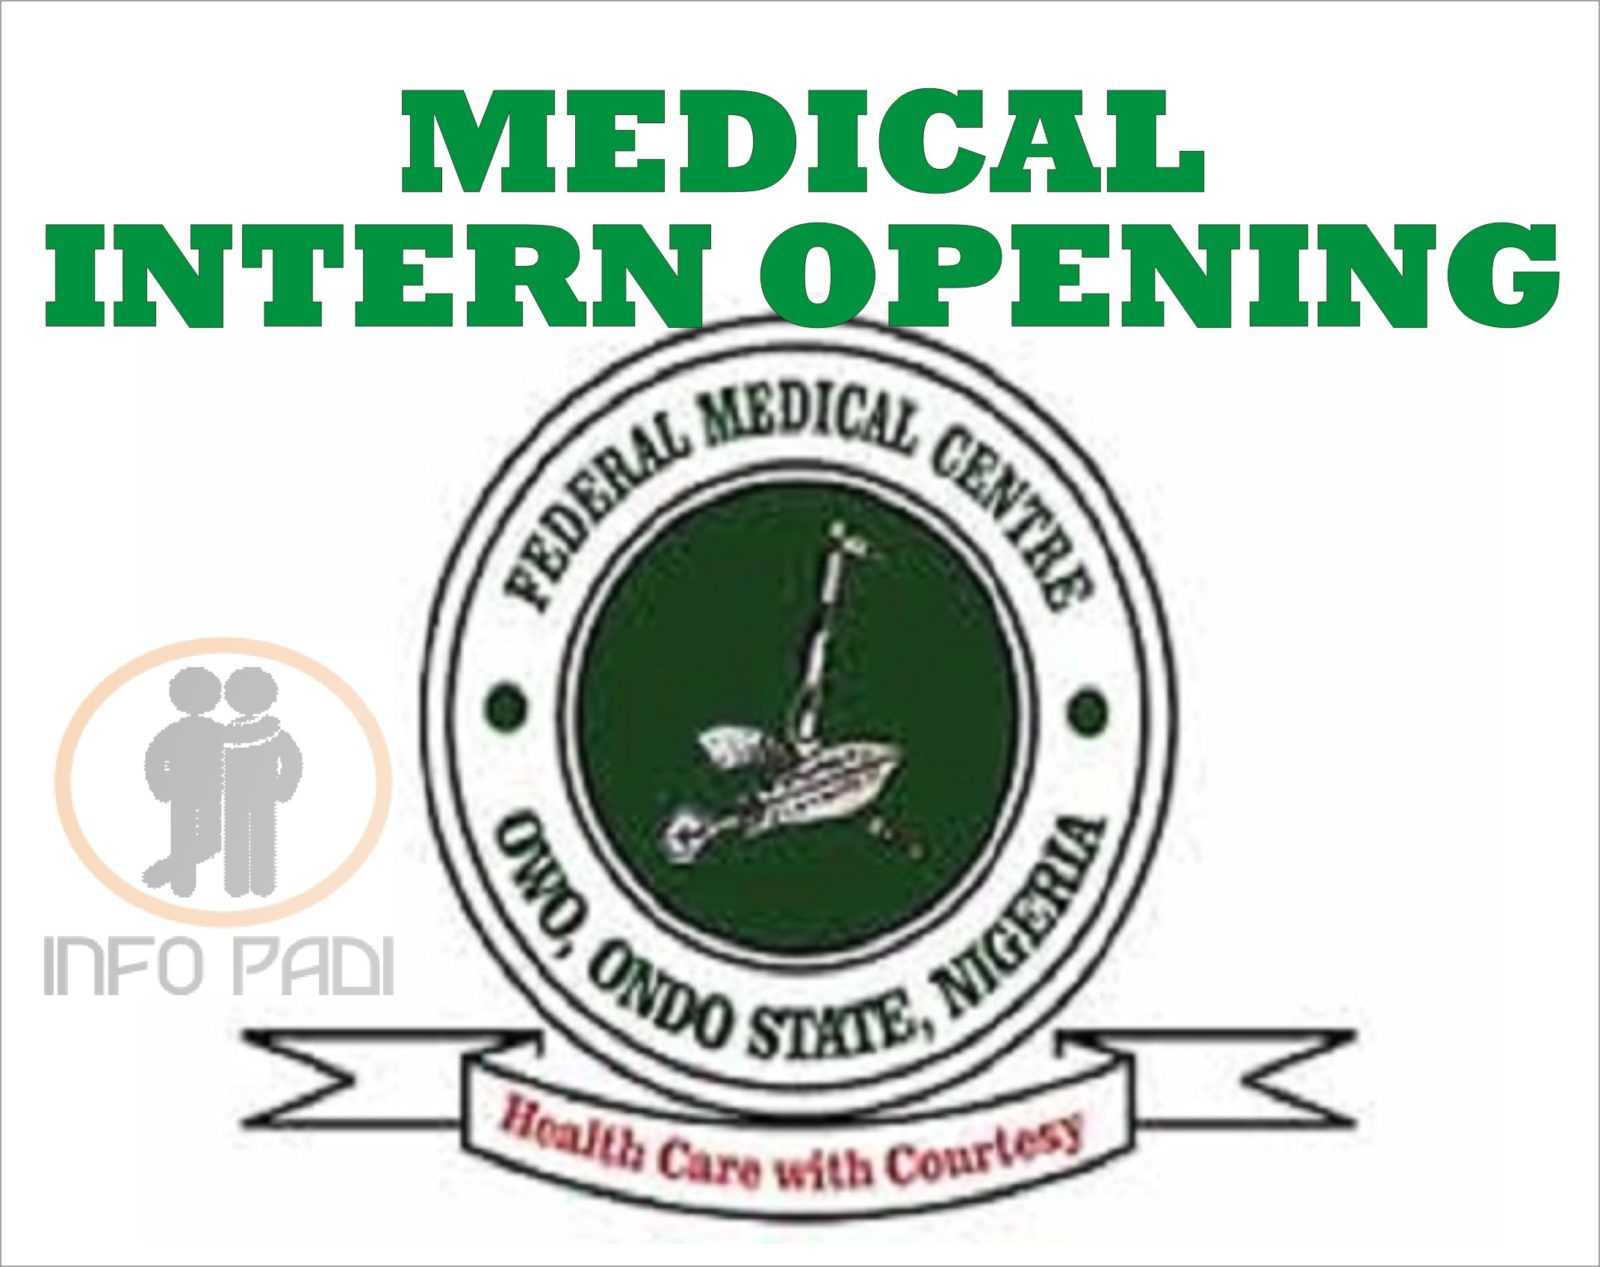 MED INTERNSHIP IN NIGERIA- Federal Medical Center Owo, Ondo State Intern Opening- Apply for your medical internship 2018